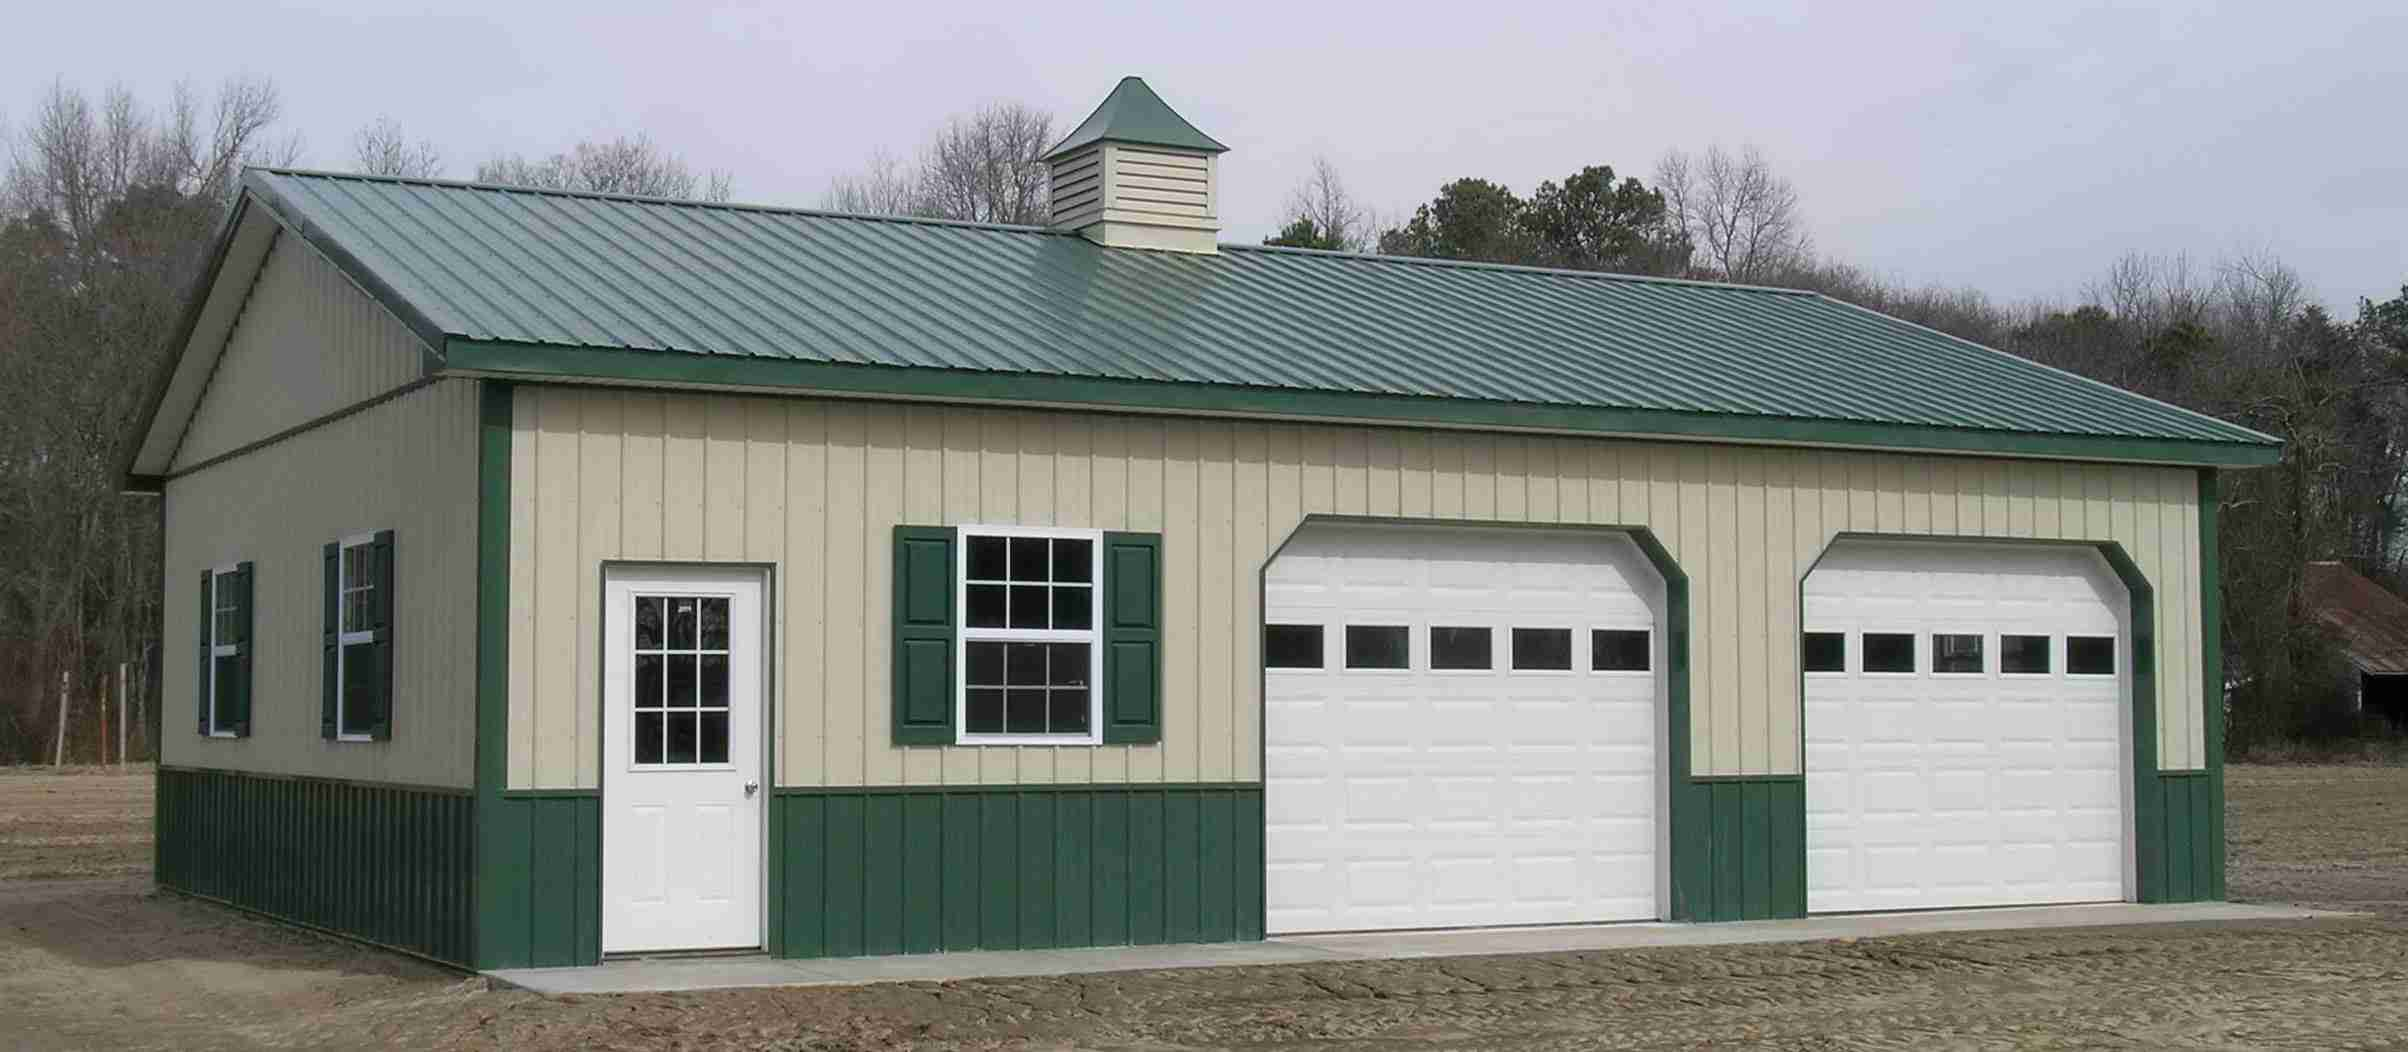 Are You Legally Able To Live In A Shed Or Barn? This Is The Number One  Question; A Highly Argumentative And Sensitive Subject. The Answer Is Yes,  And No.